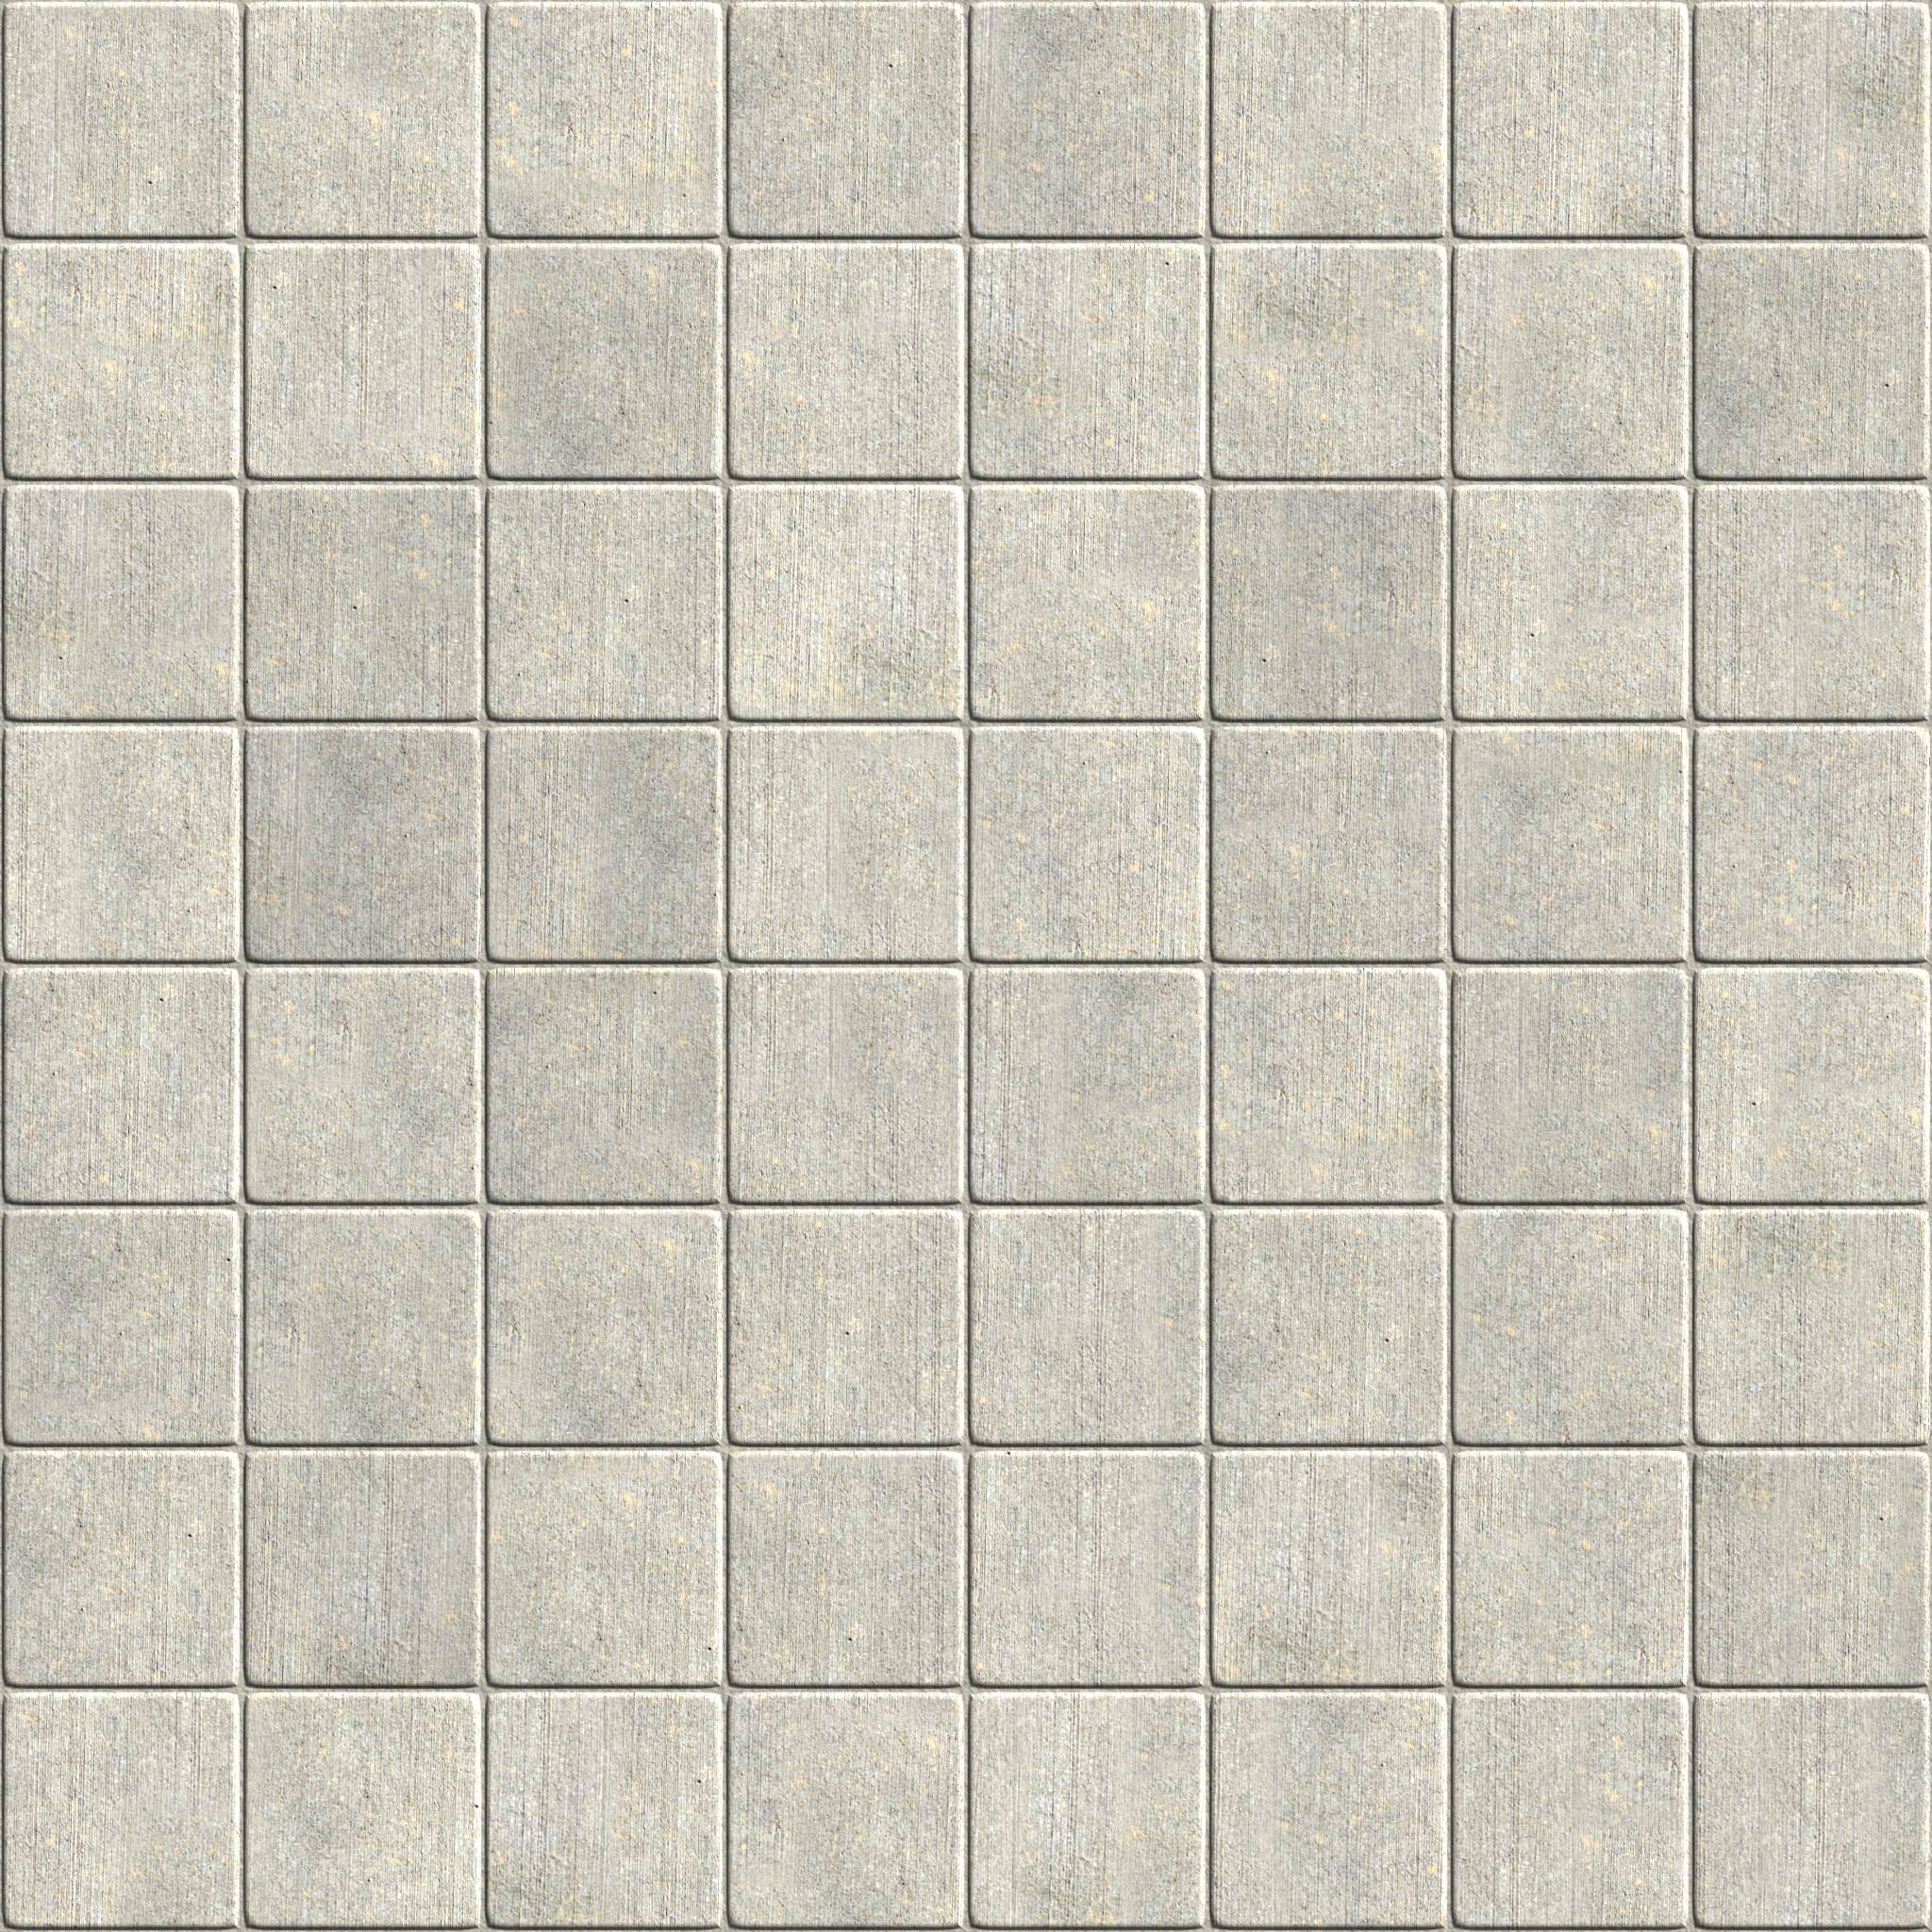 Outdoor mosaic floor tiles